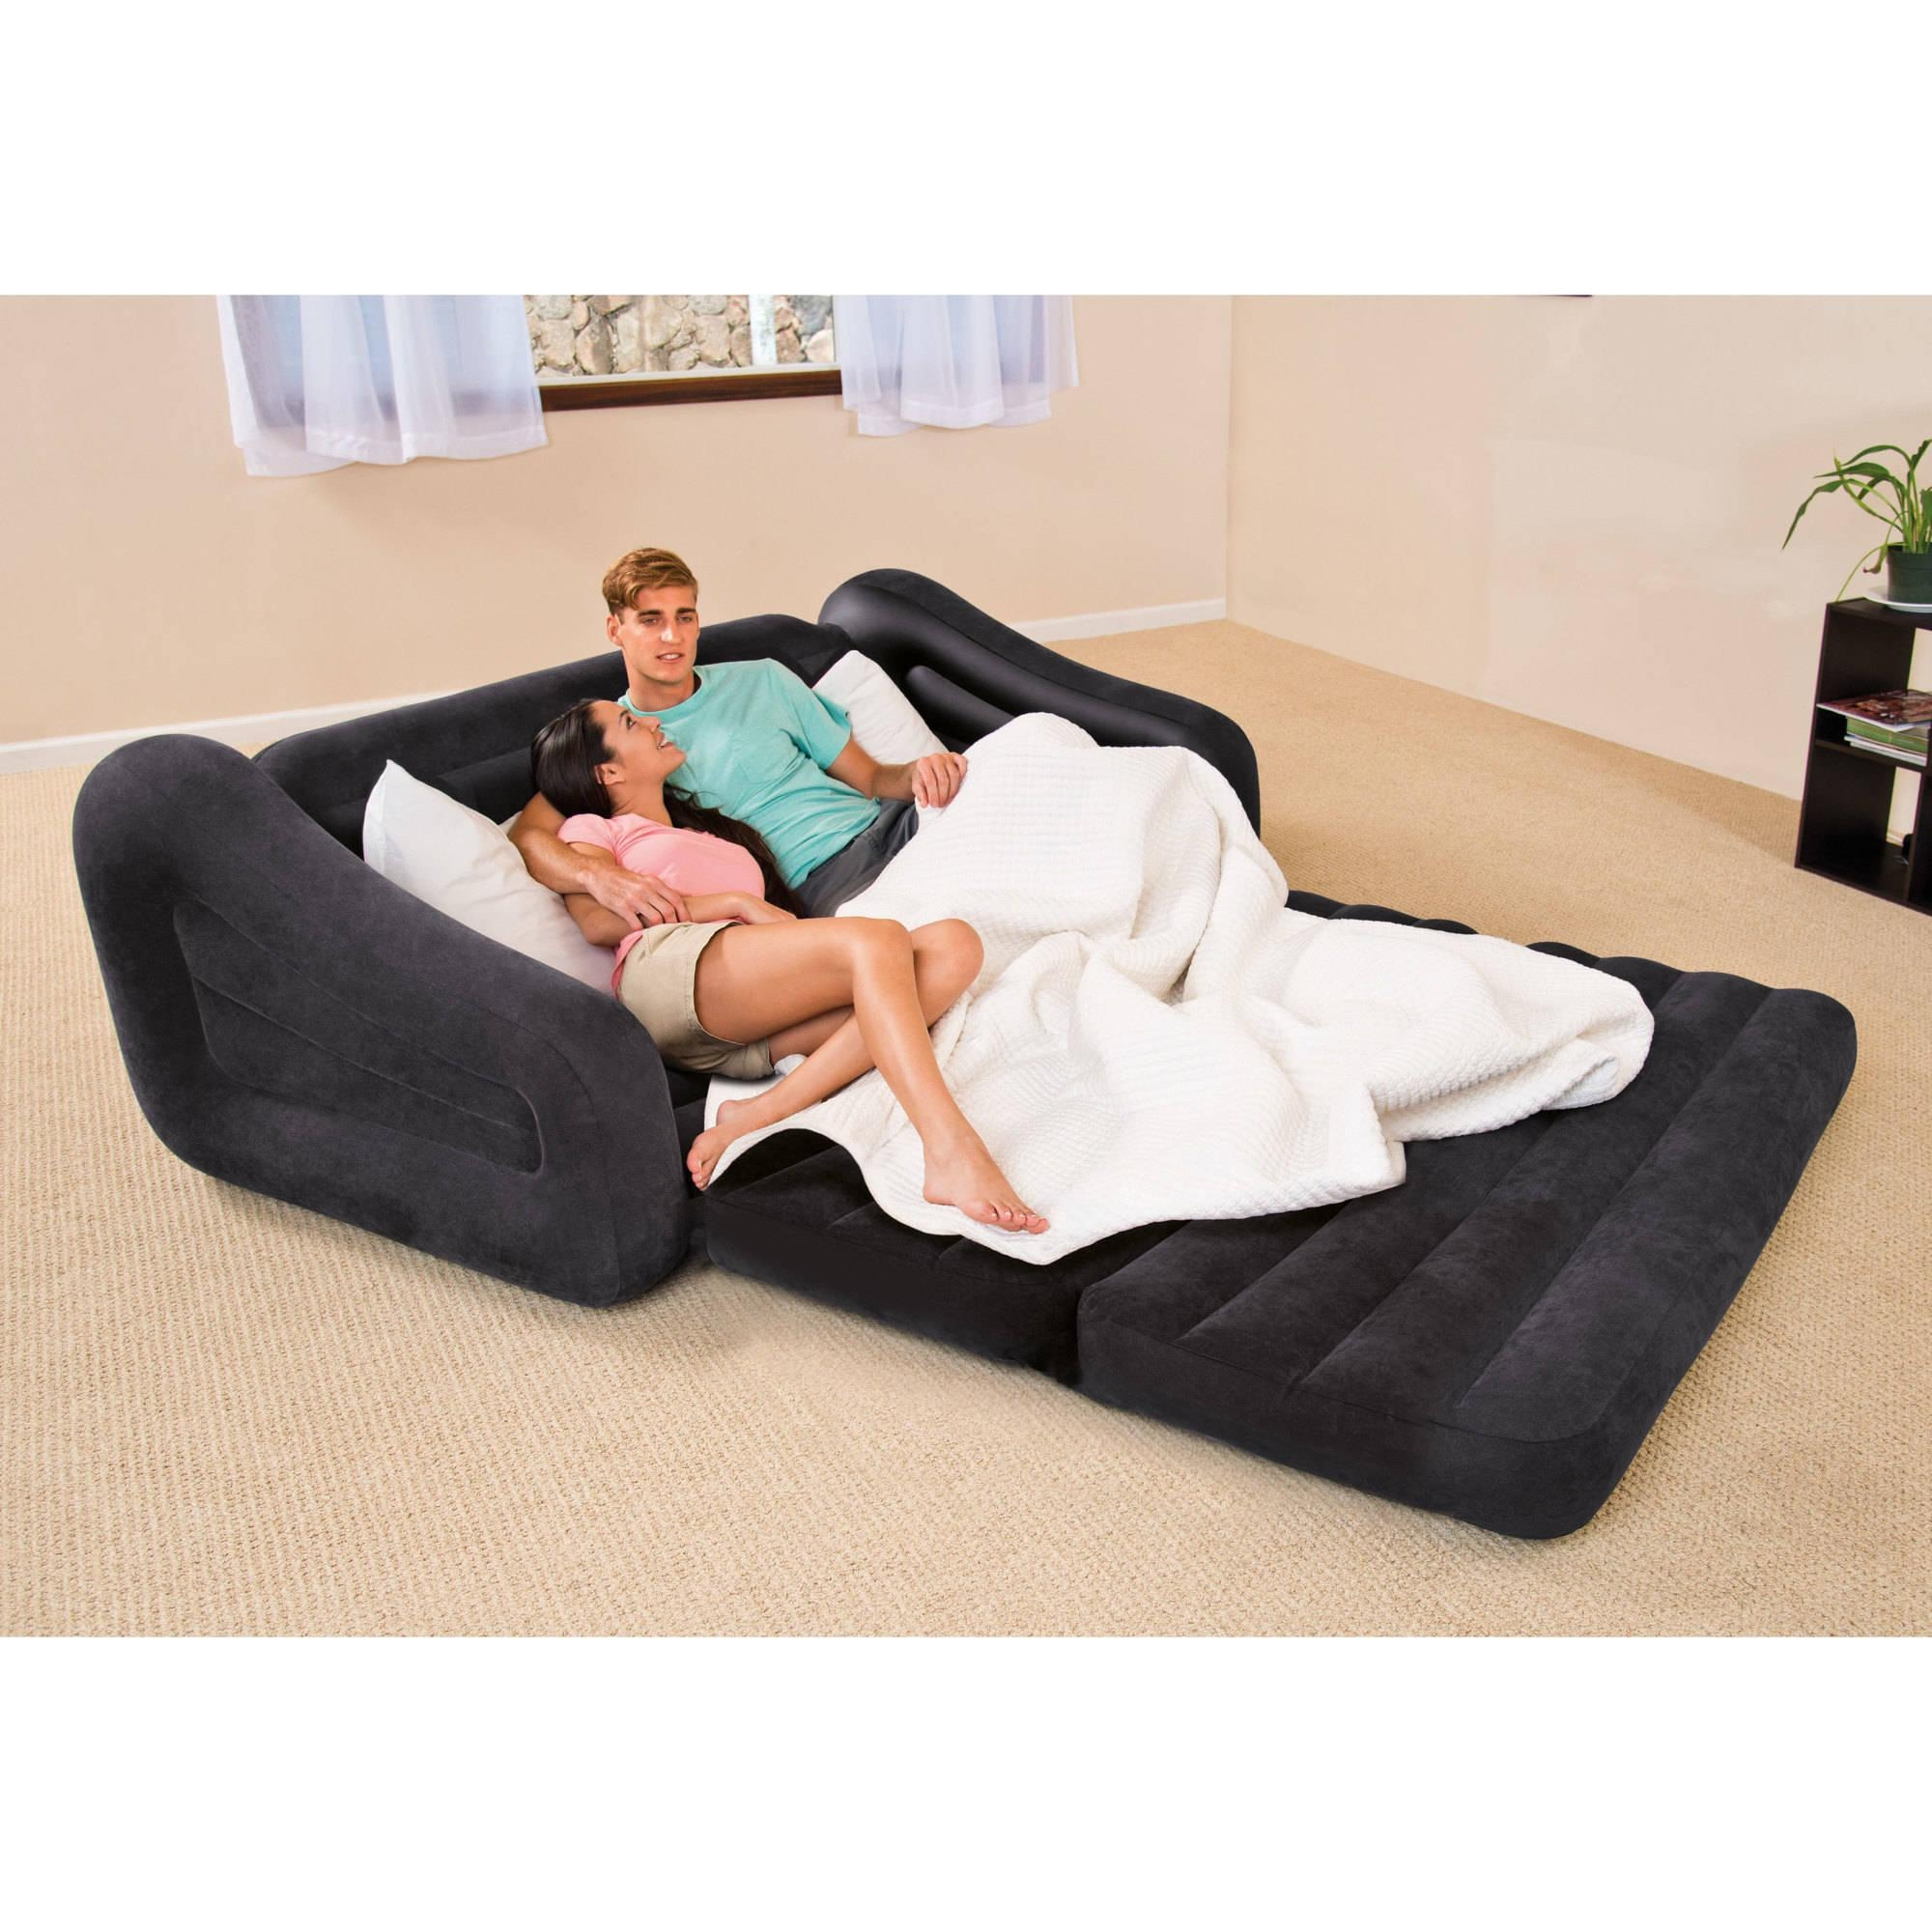 Intex Queen Inflatable Pull Out Sofa Bed – Walmart Pertaining To Pull Out Queen Size Bed Sofas (Image 12 of 20)